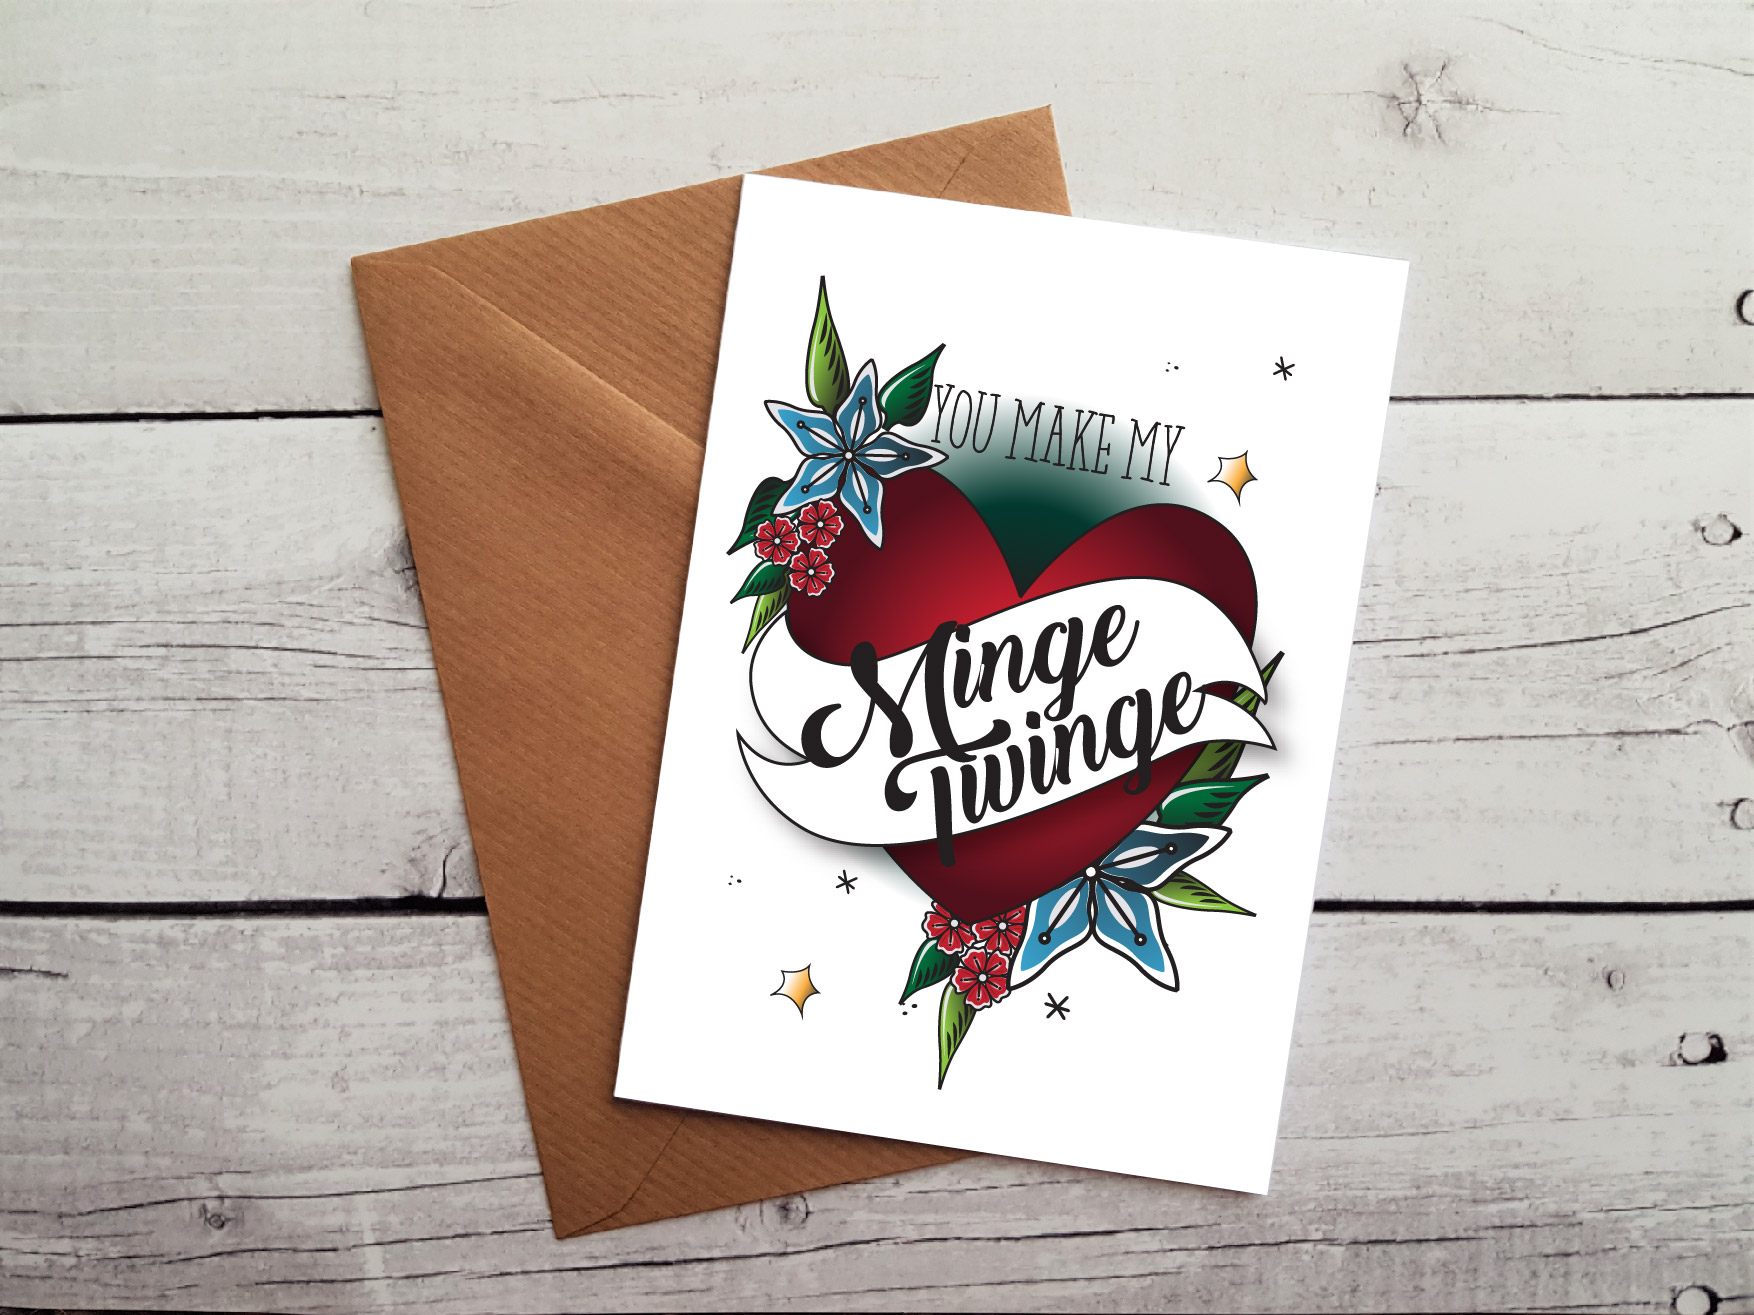 Rude anniversary cards ~ Rude anniversary card you make my minge twinge occasion card